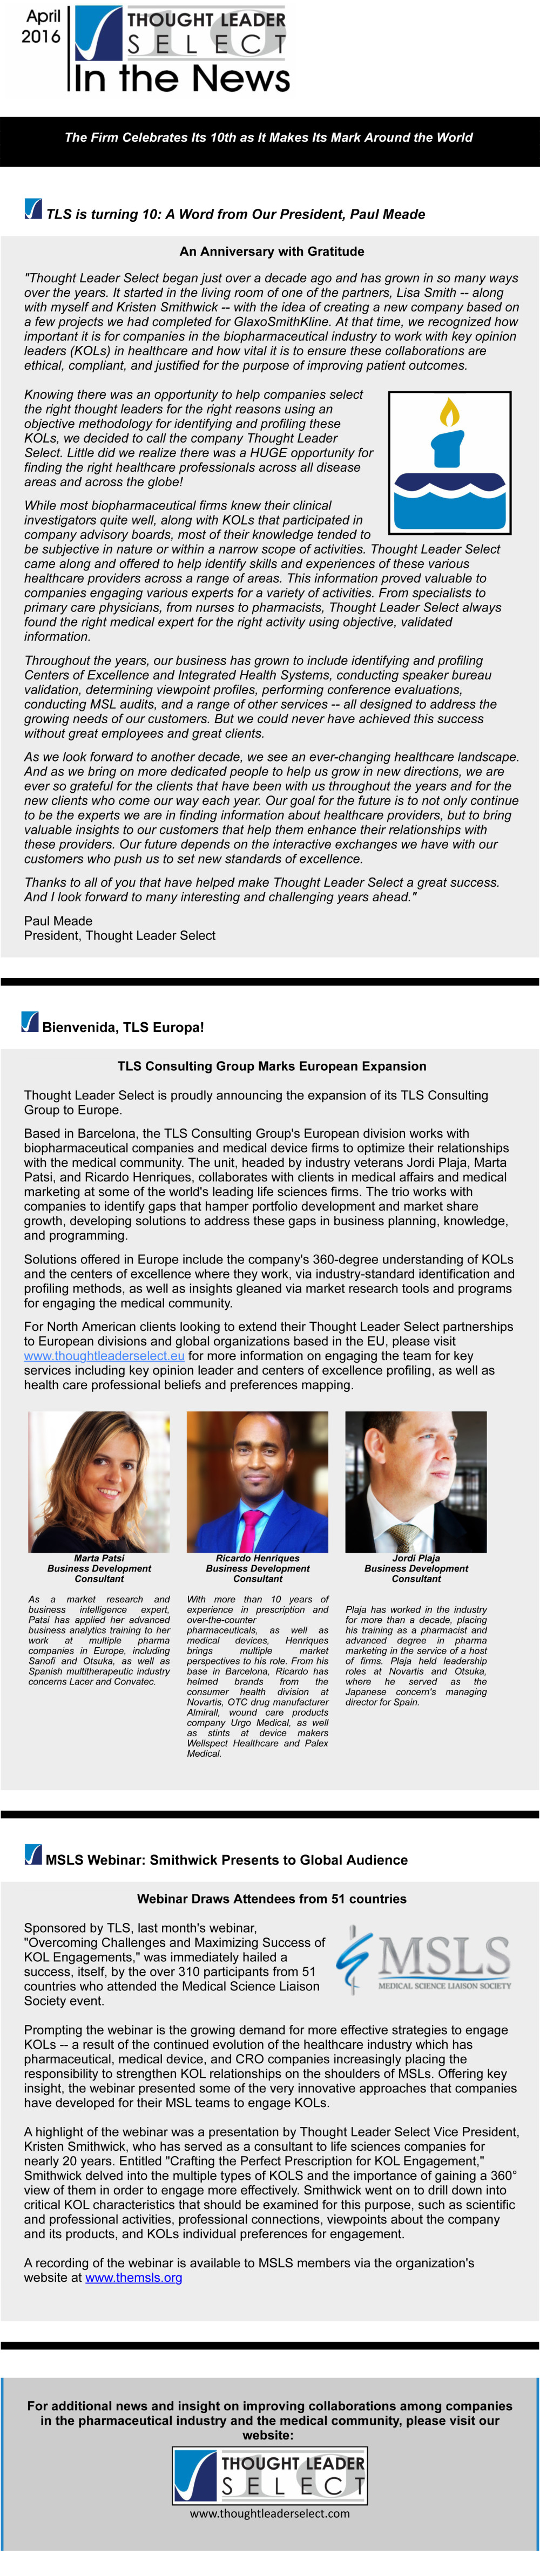 TLS Celebrates 10th Anniversary Consulting Group Expands into Eu